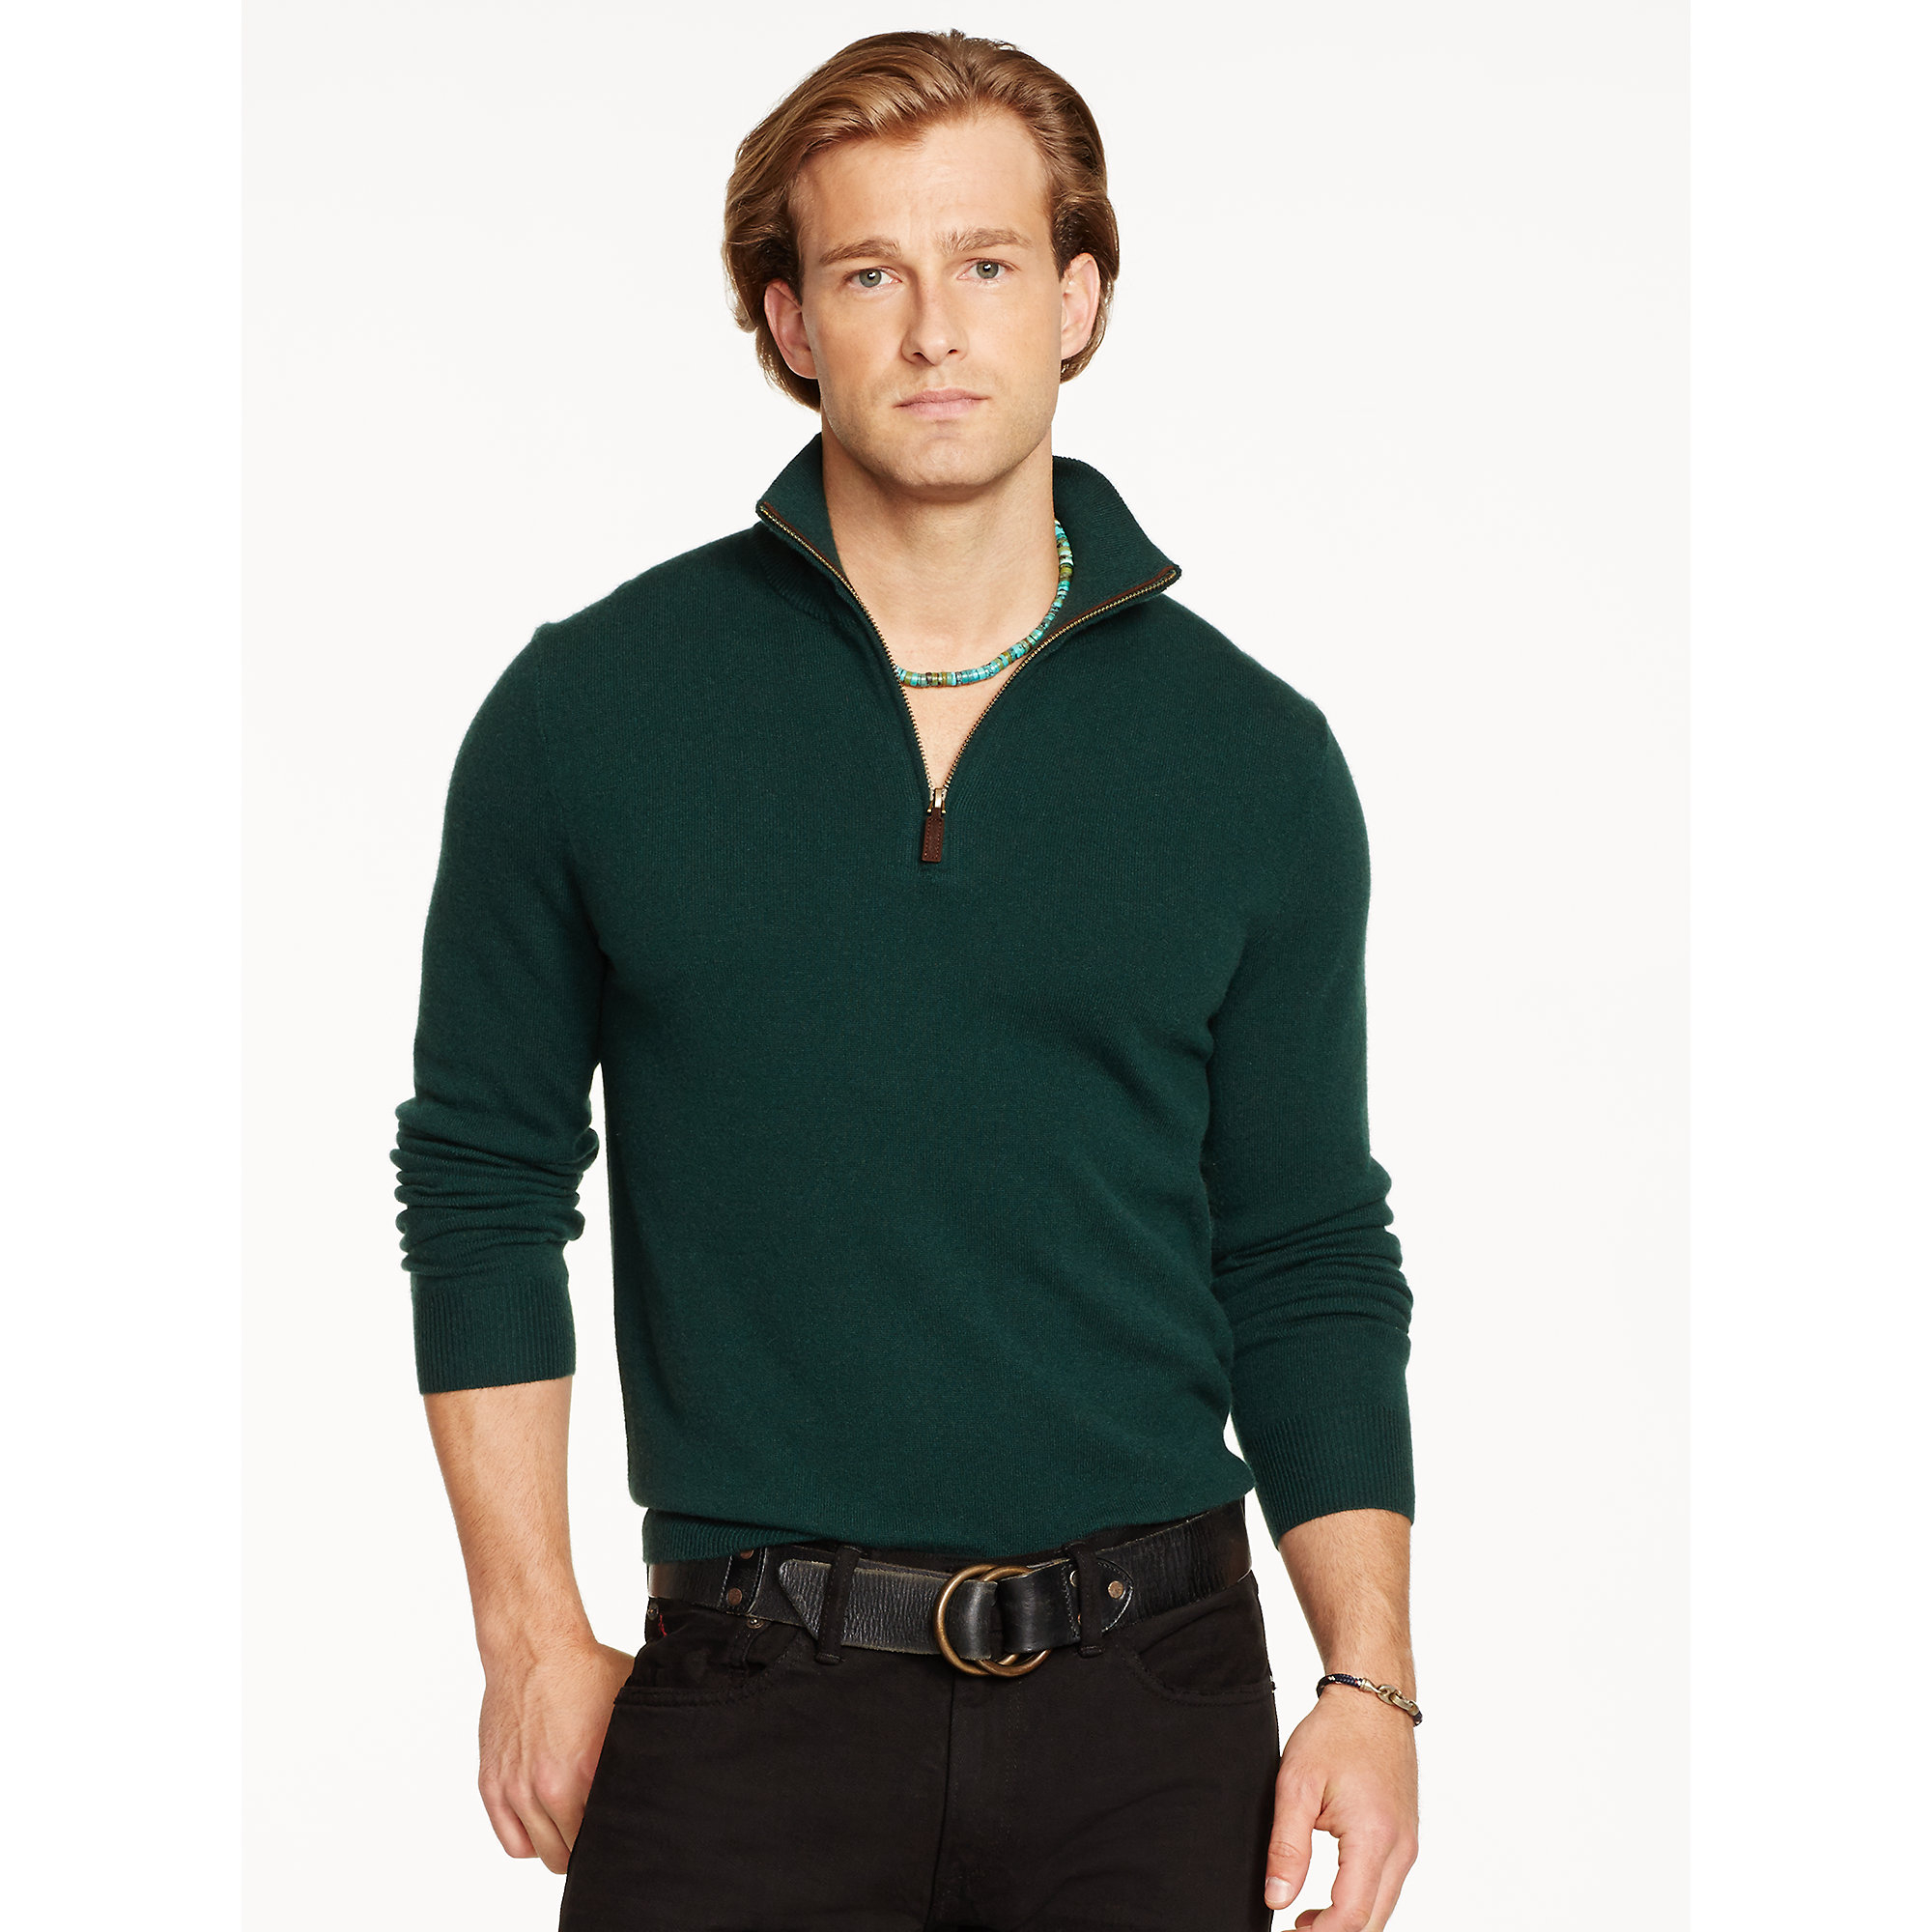 Shop for Lauren By Ralph Lauren and other men's clothing brands. Find the latest styles and selection in Lauren By Ralph Lauren clothing from Men's Wearhouse. Available in regular sizes and big & tall sizes. Enjoy FREE Shipping on orders over $50+!